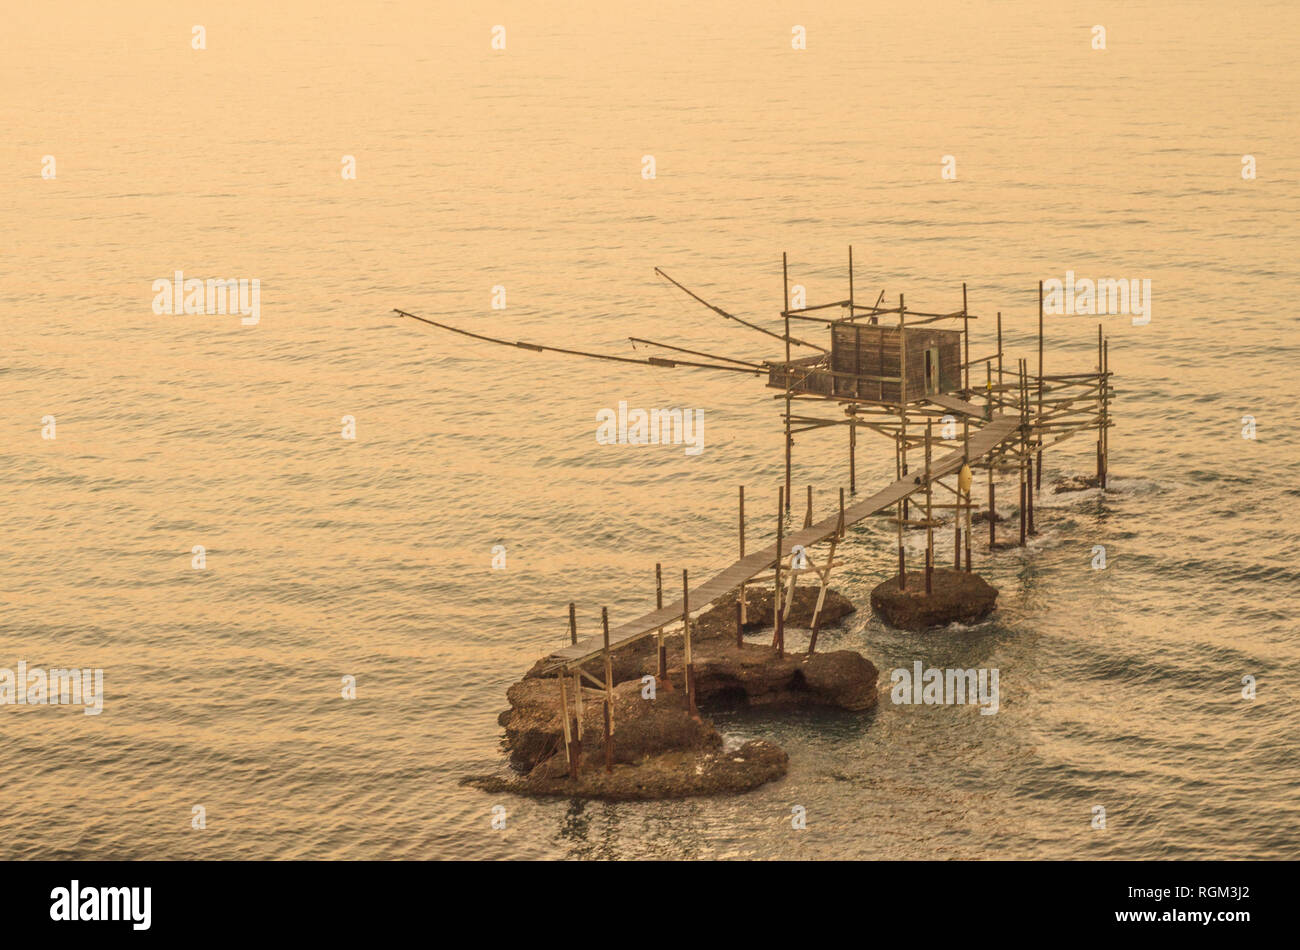 View of a trabucco, an ancient fishing machine typical of the southern Adriatic coast in Italy - Stock Image